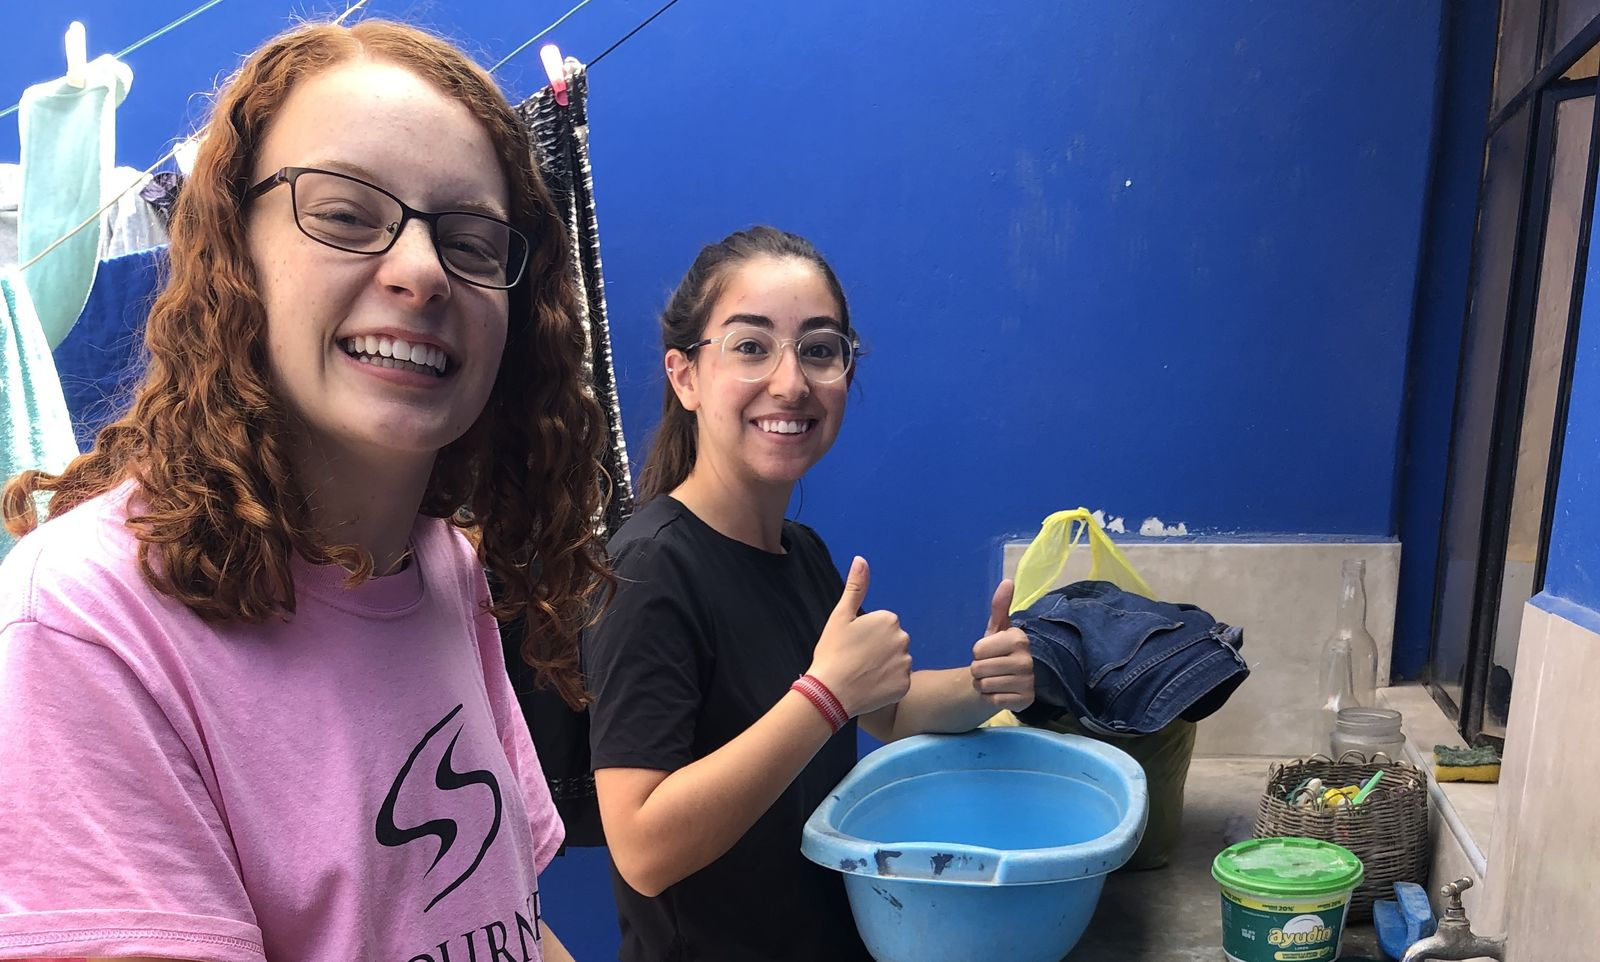 Tacna JVs doing our laundry the old fashioned way-by hand! (2019)